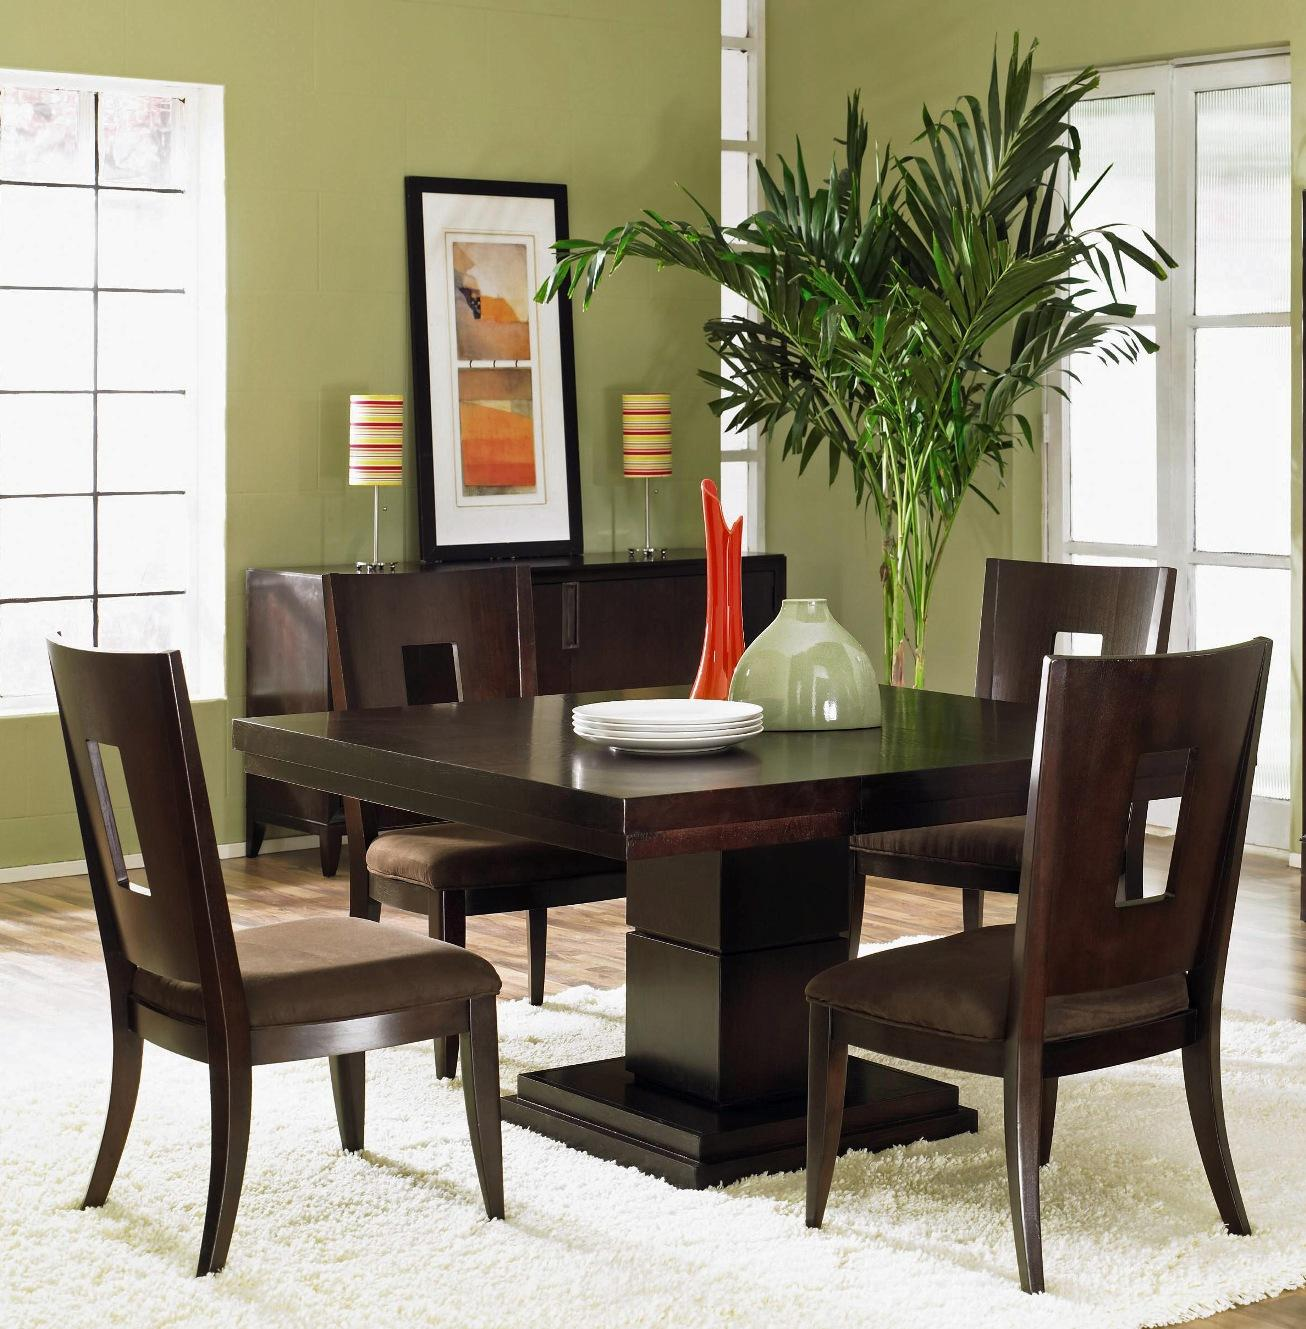 dining room chair ideas photo - 1